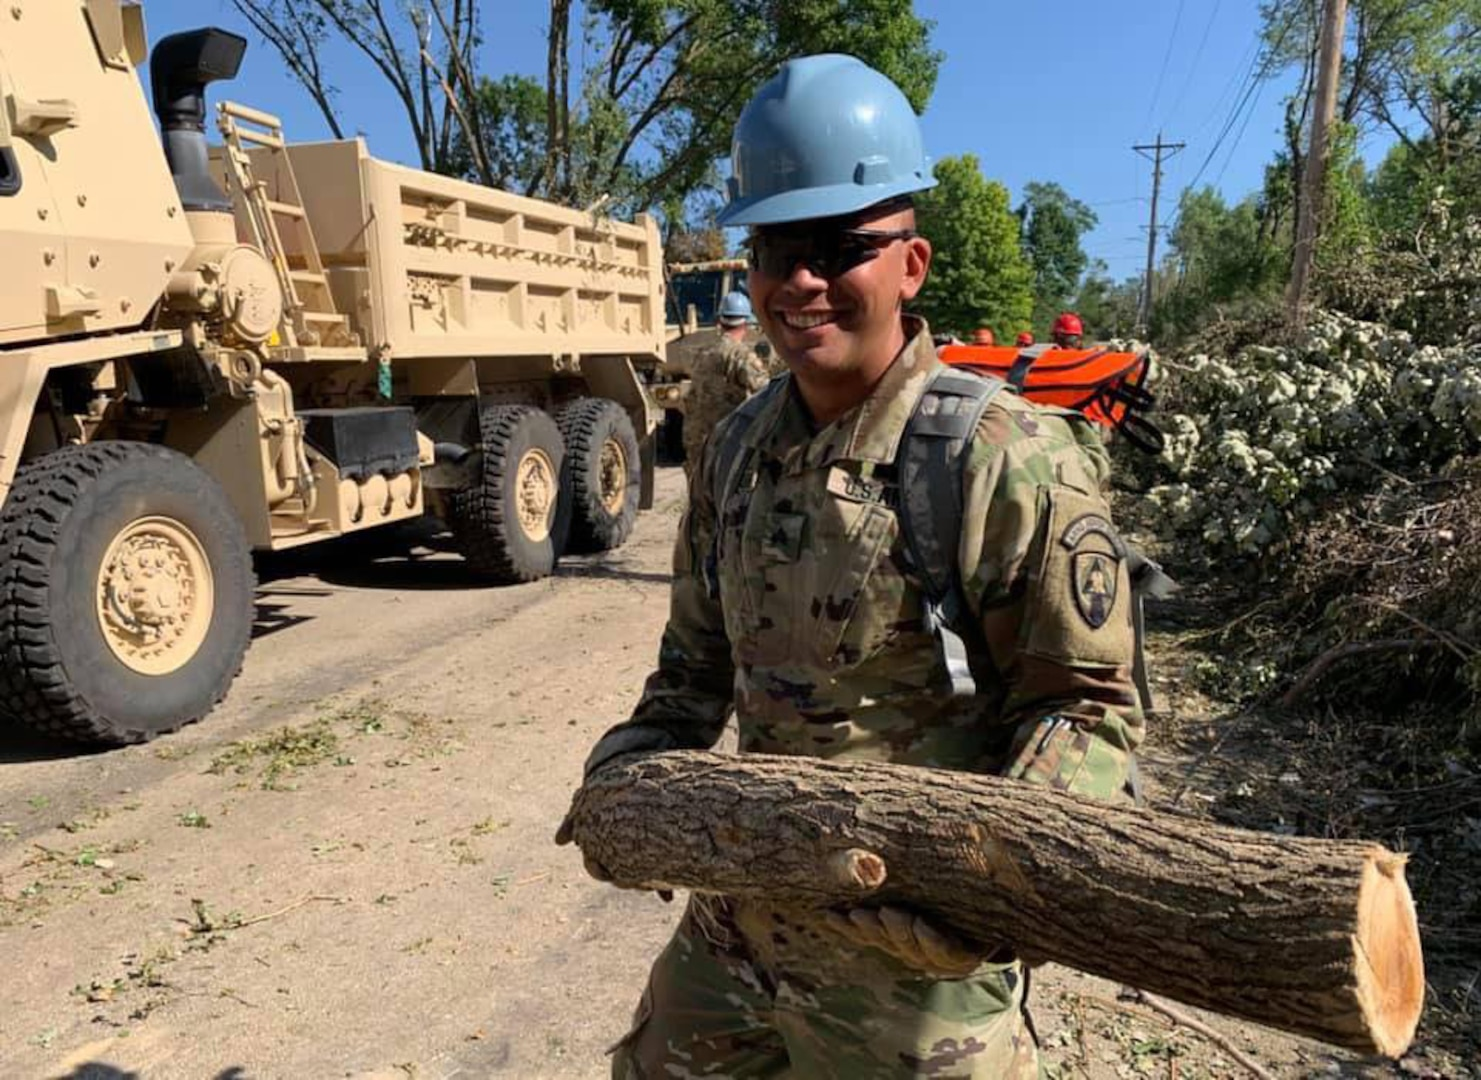 Iowa National Guard Soldiers with the 831st Engineer Company worked Aug. 15-16, 2020, to clear downed trees to reach a substation that supplies power to parts of Cedar Rapids. An Aug. 10 derecho caused widespread damage in the area.